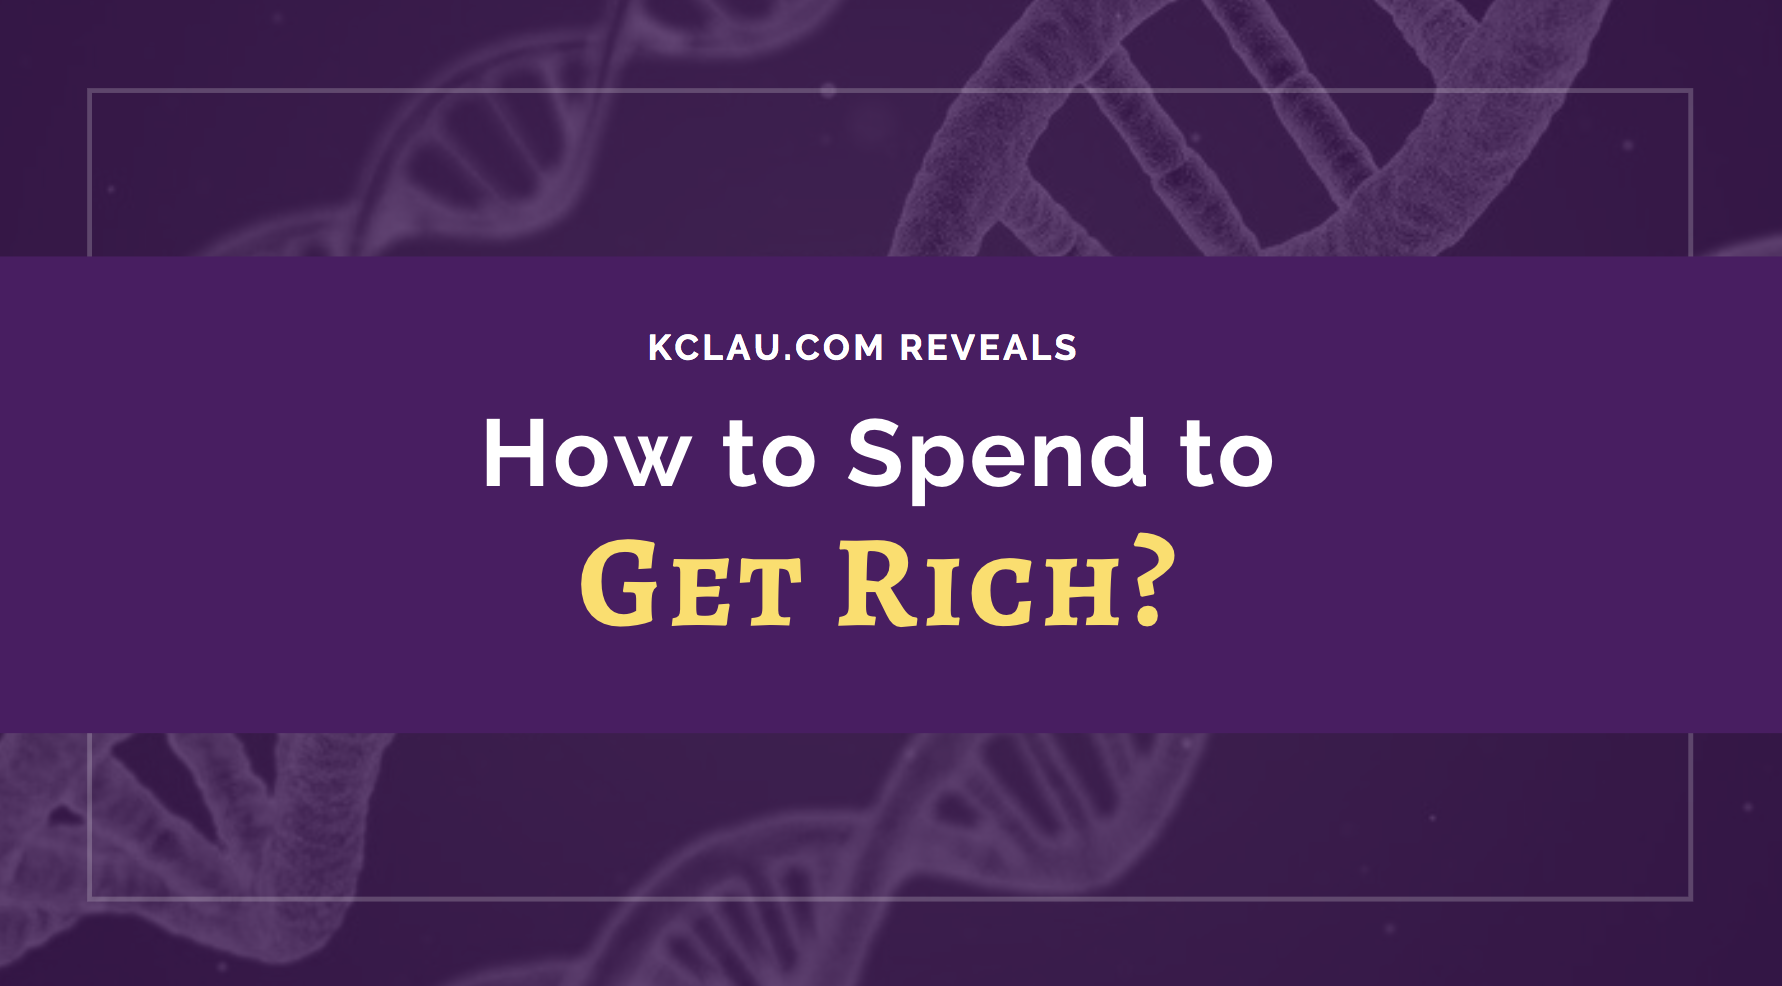 How to Spend Money to Become Richer?